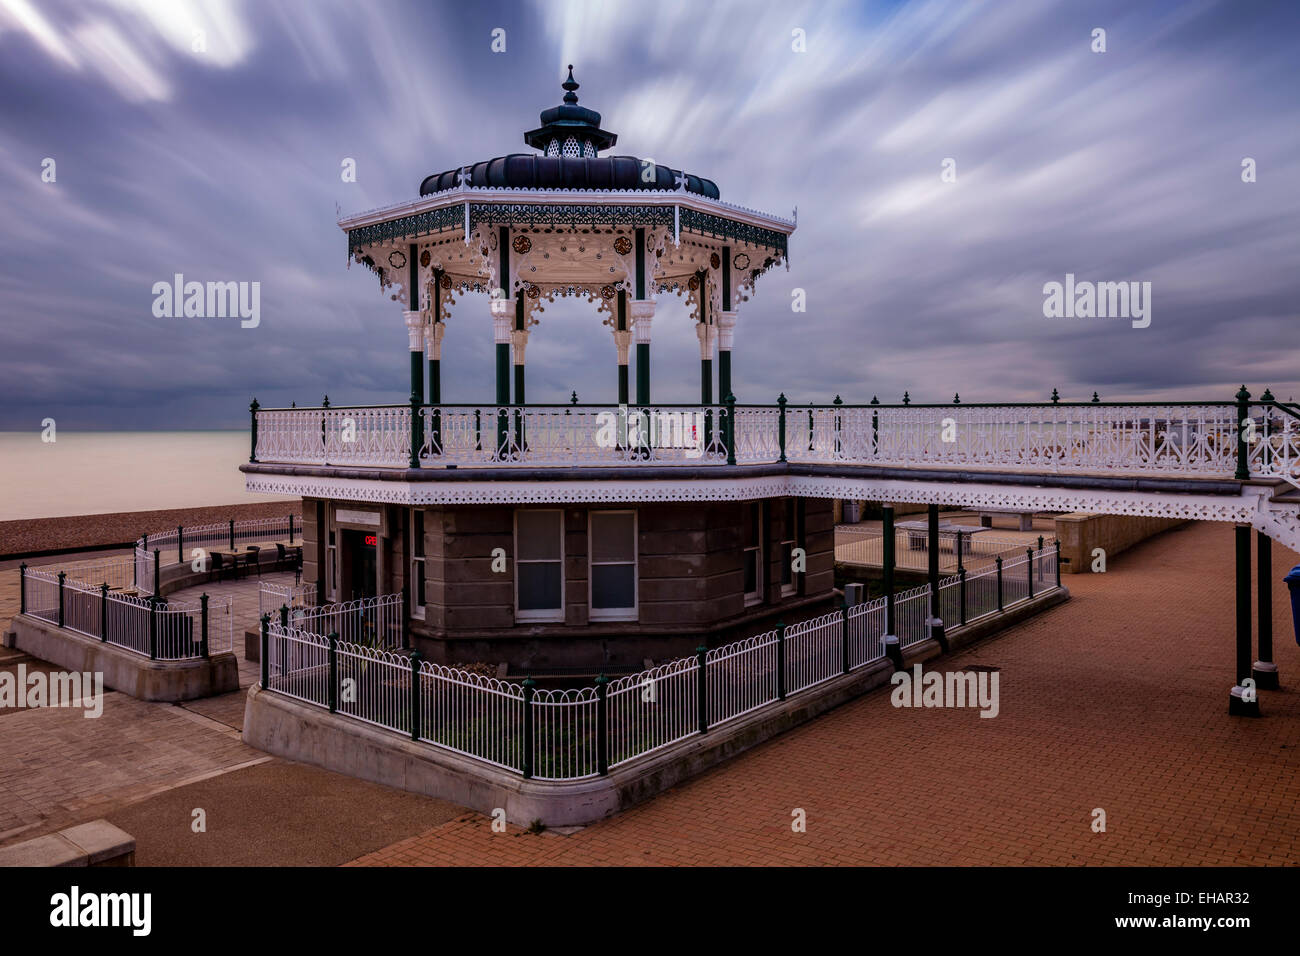 The Victorian Bandstand (Recently Restored) On Brighton Seafront, Brighton, England - Stock Image